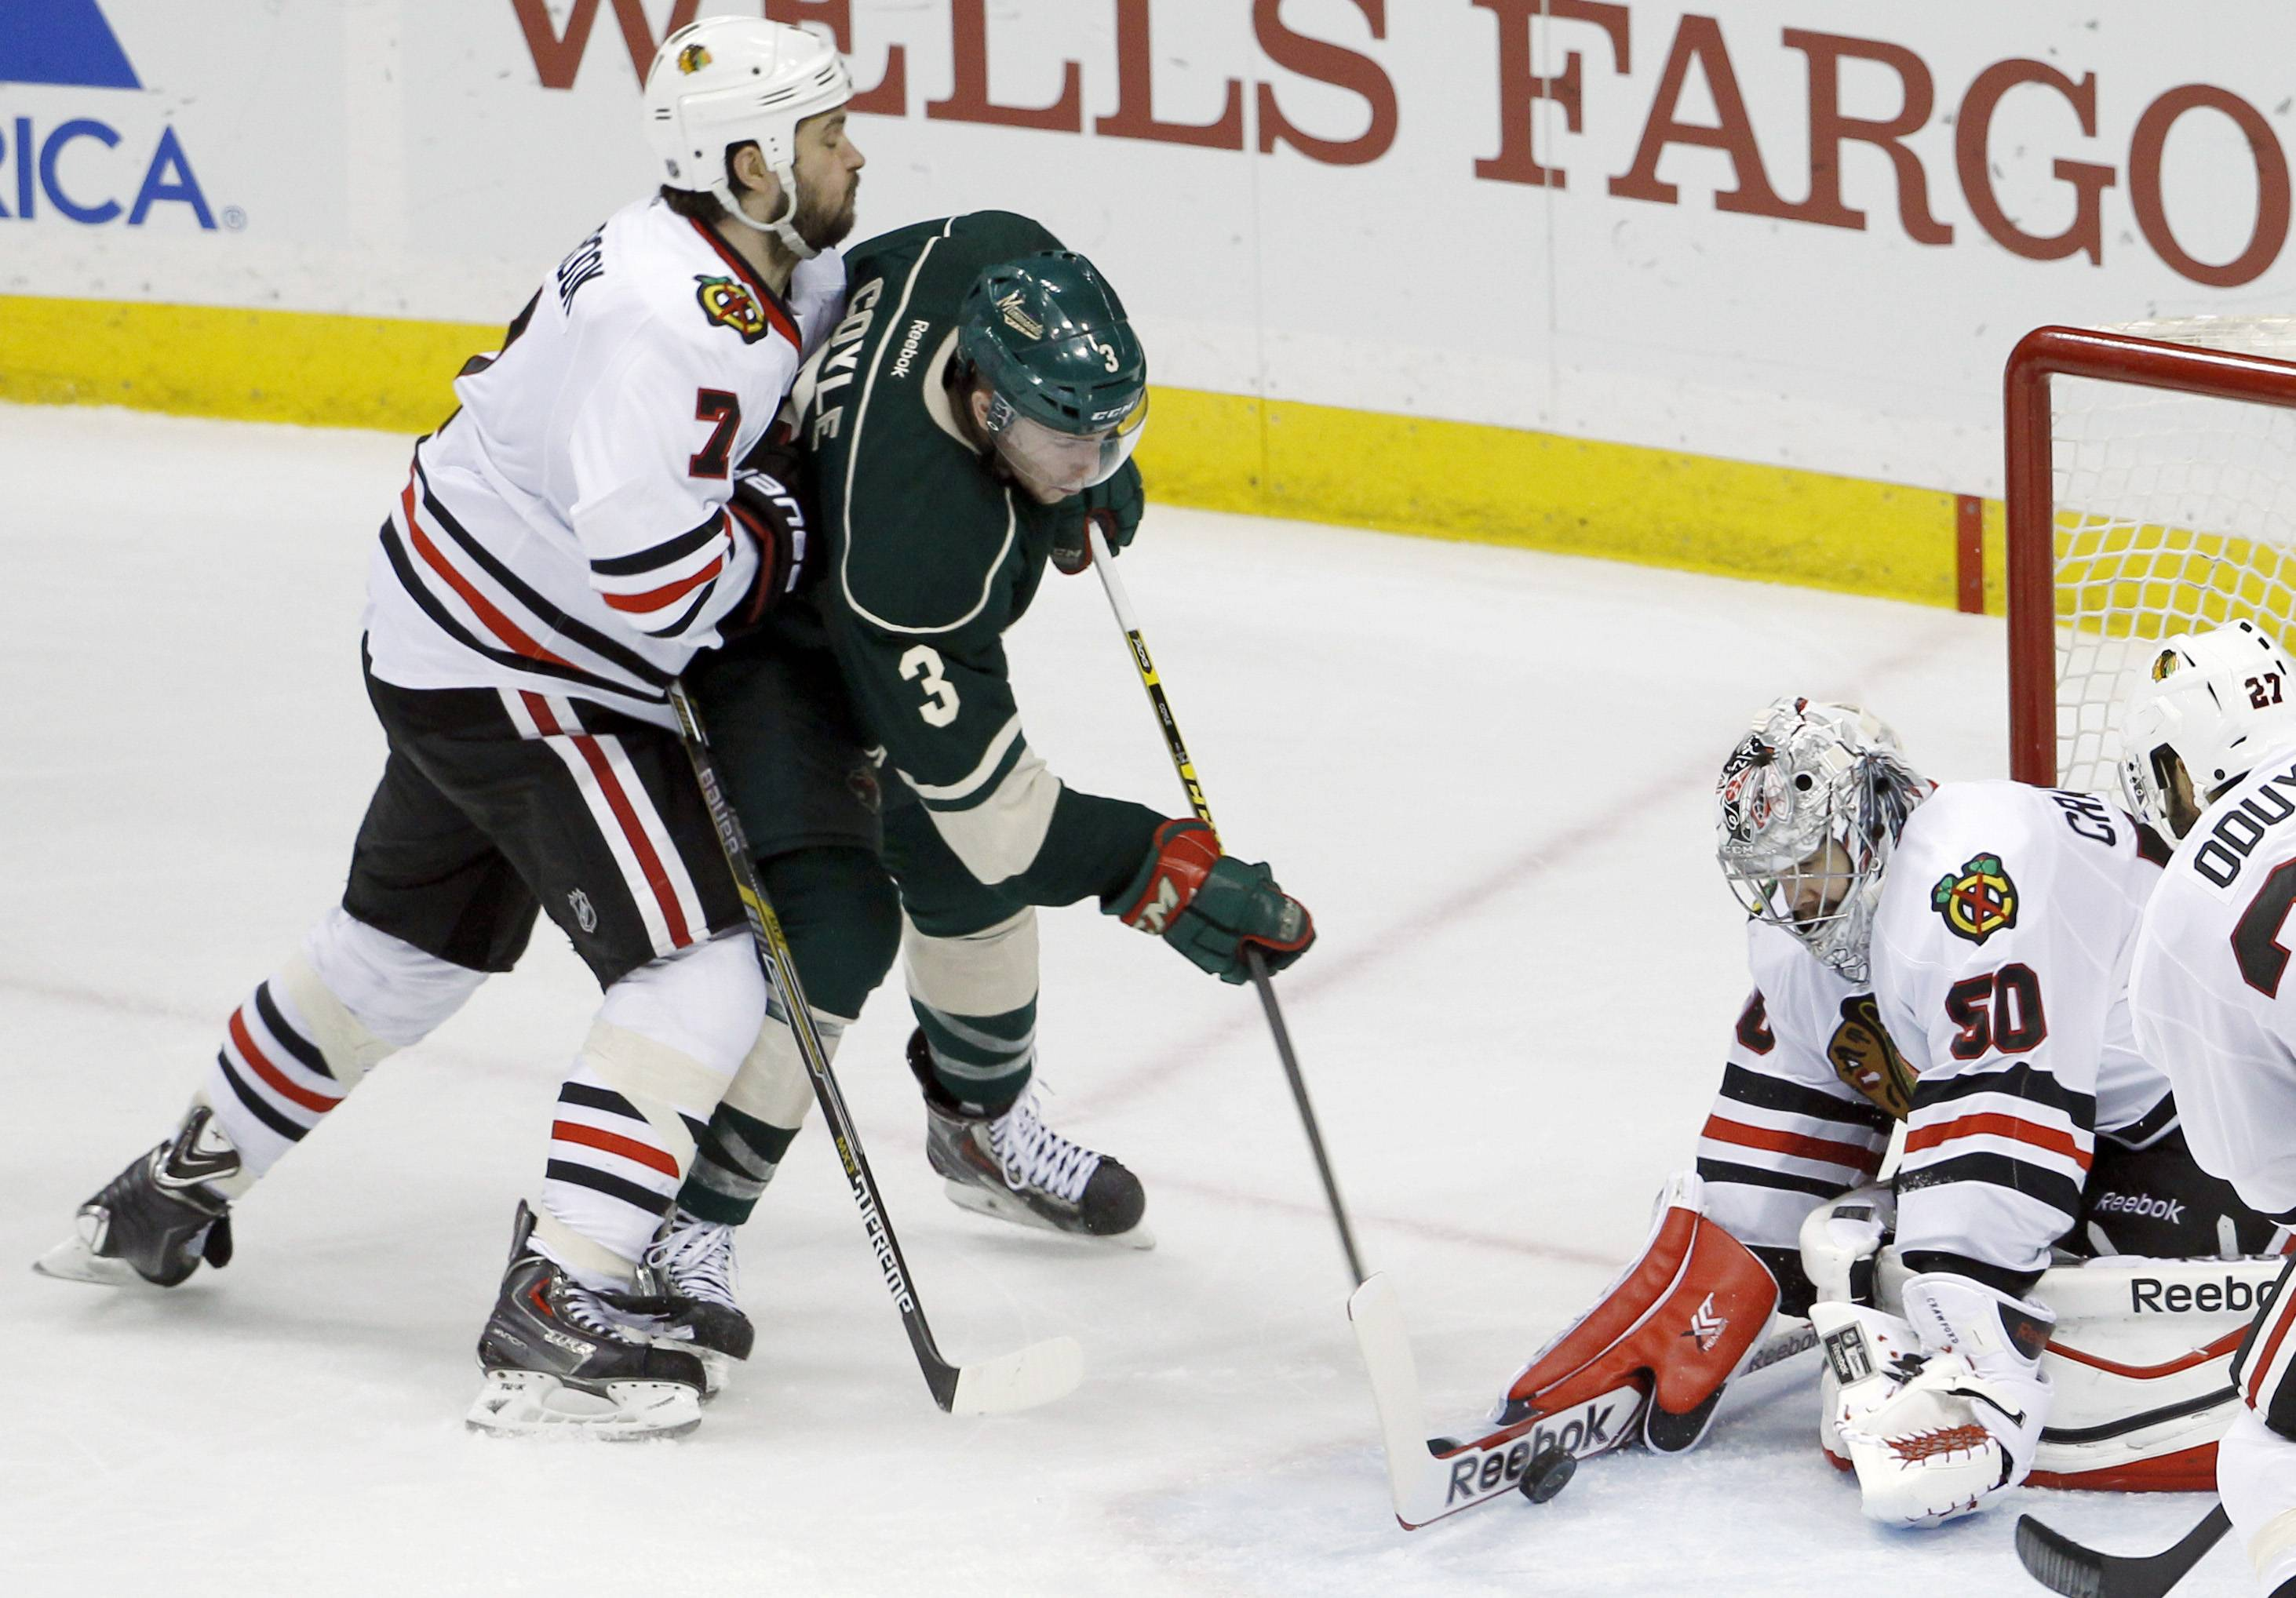 Chicago Blackhawks goalie Corey Crawford (50) scoops away a shot by Minnesota Wild center Charlie Coyle (3) as Blackhawks defenseman Brent Seabrook (7) pressures Coyle during the third period.